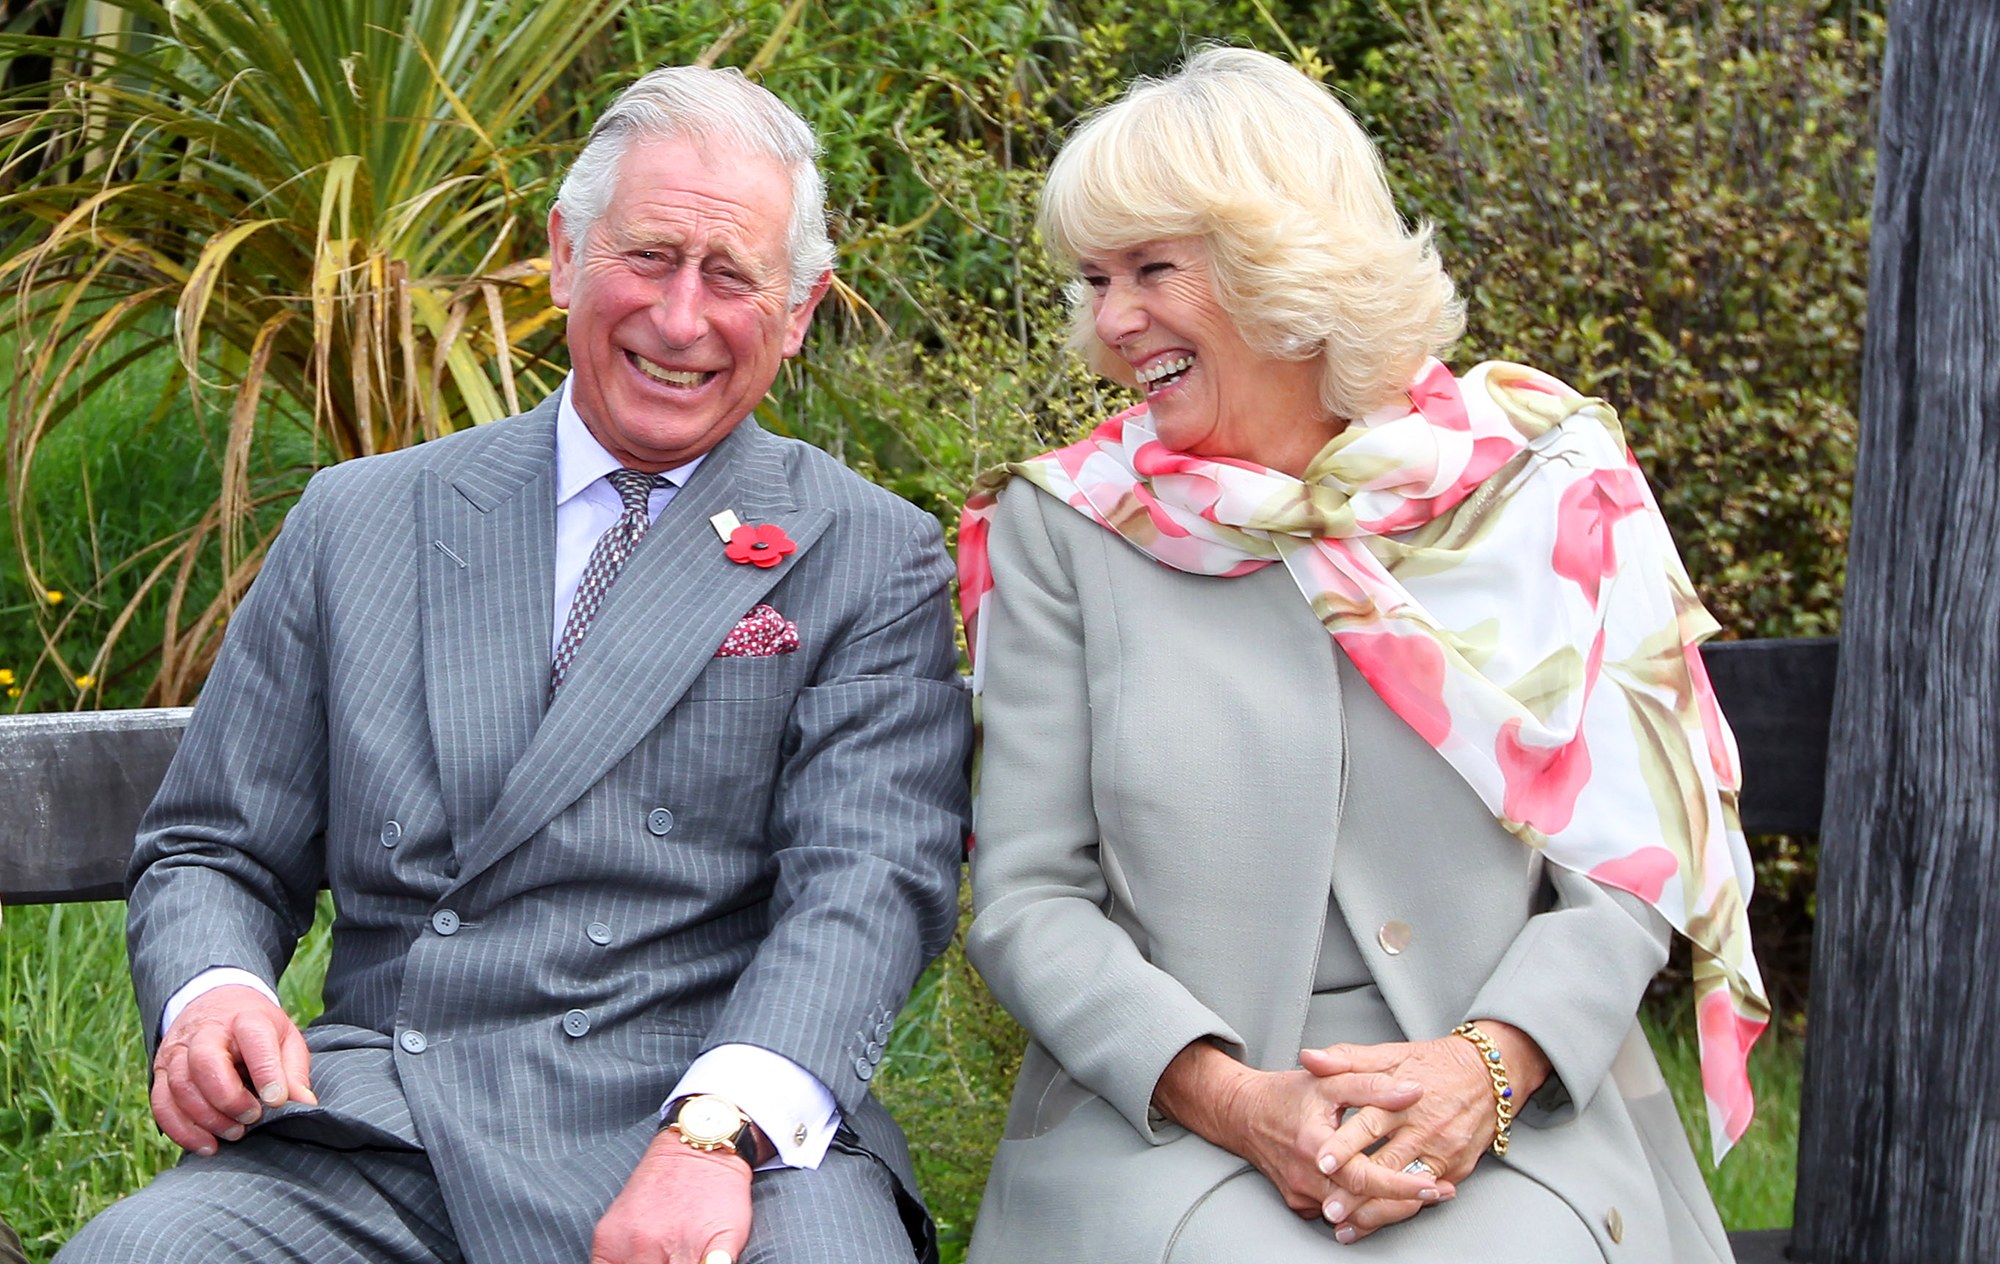 Royal Family Nicknames - Prince Charles and his wife, Camilla, Duchess of Cornwall , got their nicknames for each other from BBC radio's The Goon Show . While the monikers are sweet for couple, they actually clued Princess Diana in on Charles' affair just weeks before their wedding.